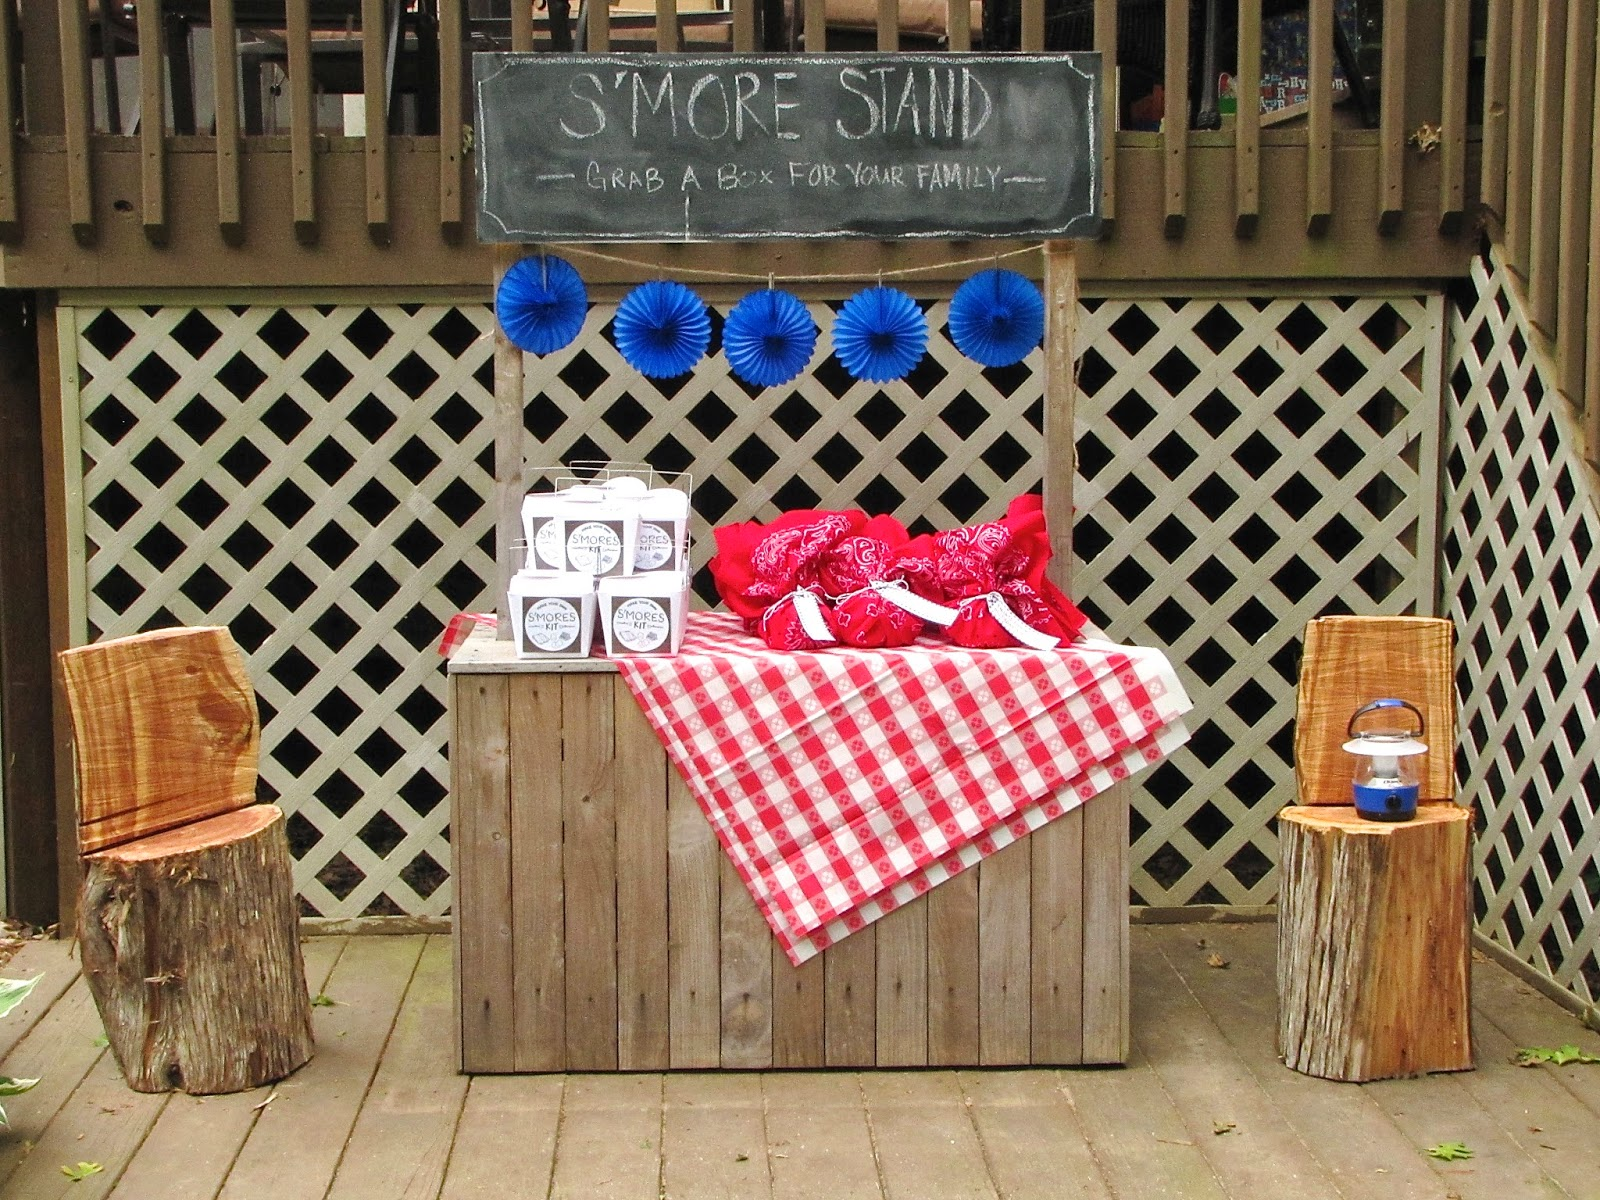 kids camping birthday party with smores stand